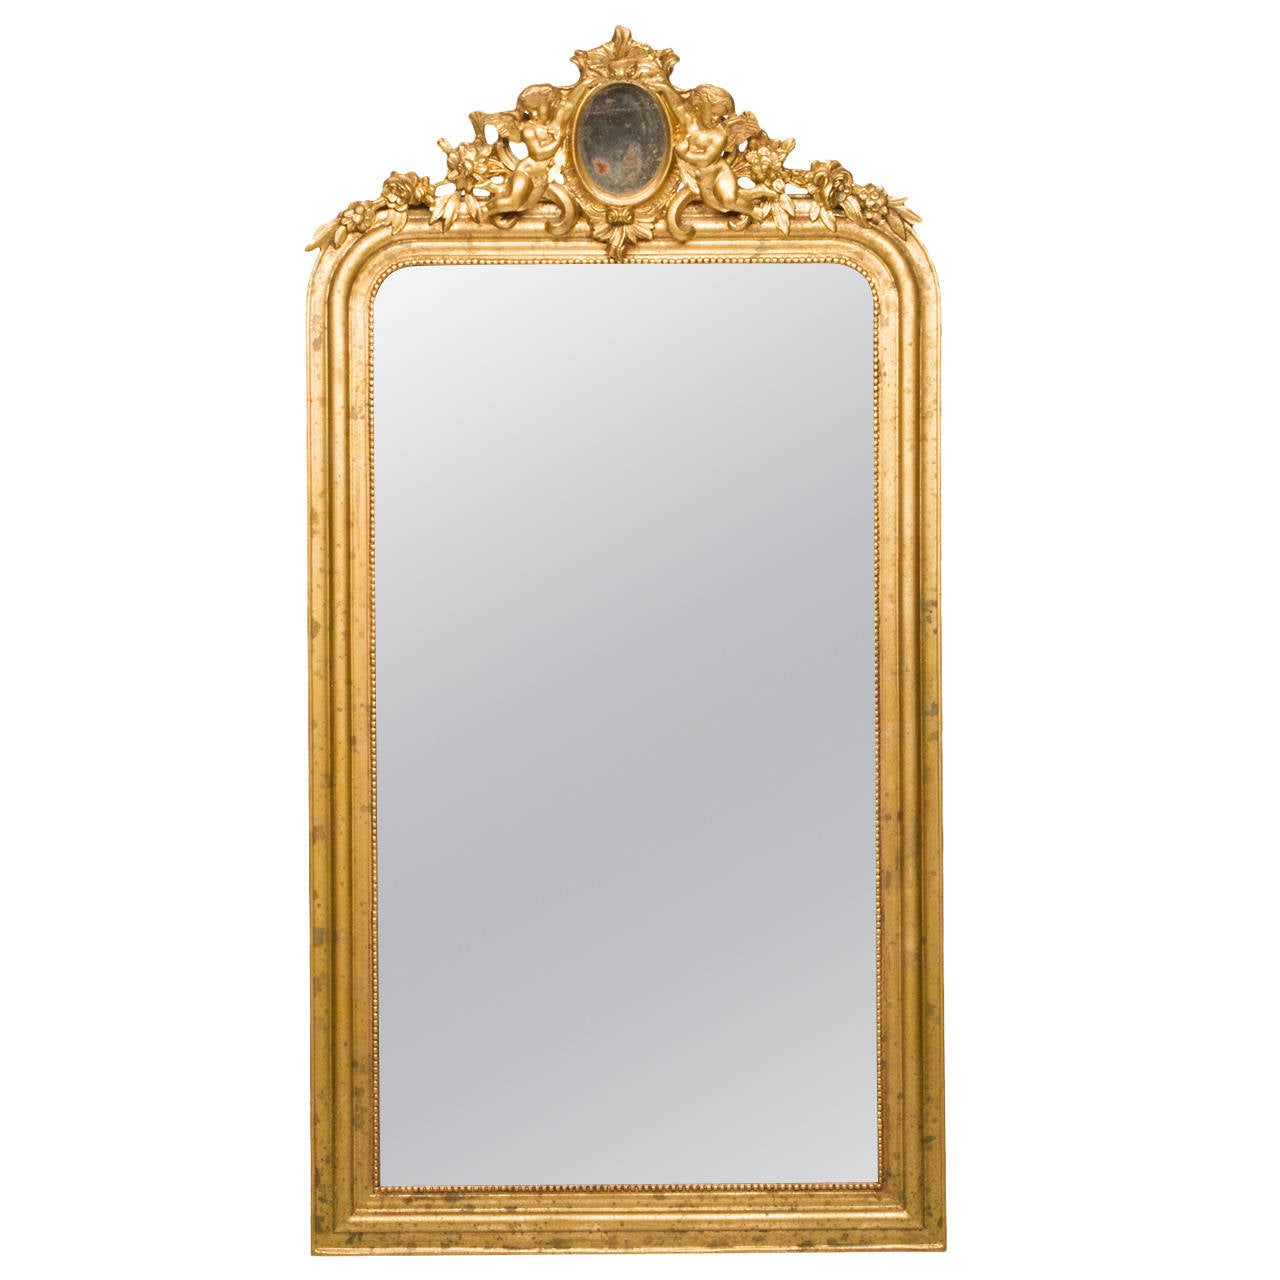 Louis philippe style antique mirror for sale at 1stdibs for Antique style wall mirror